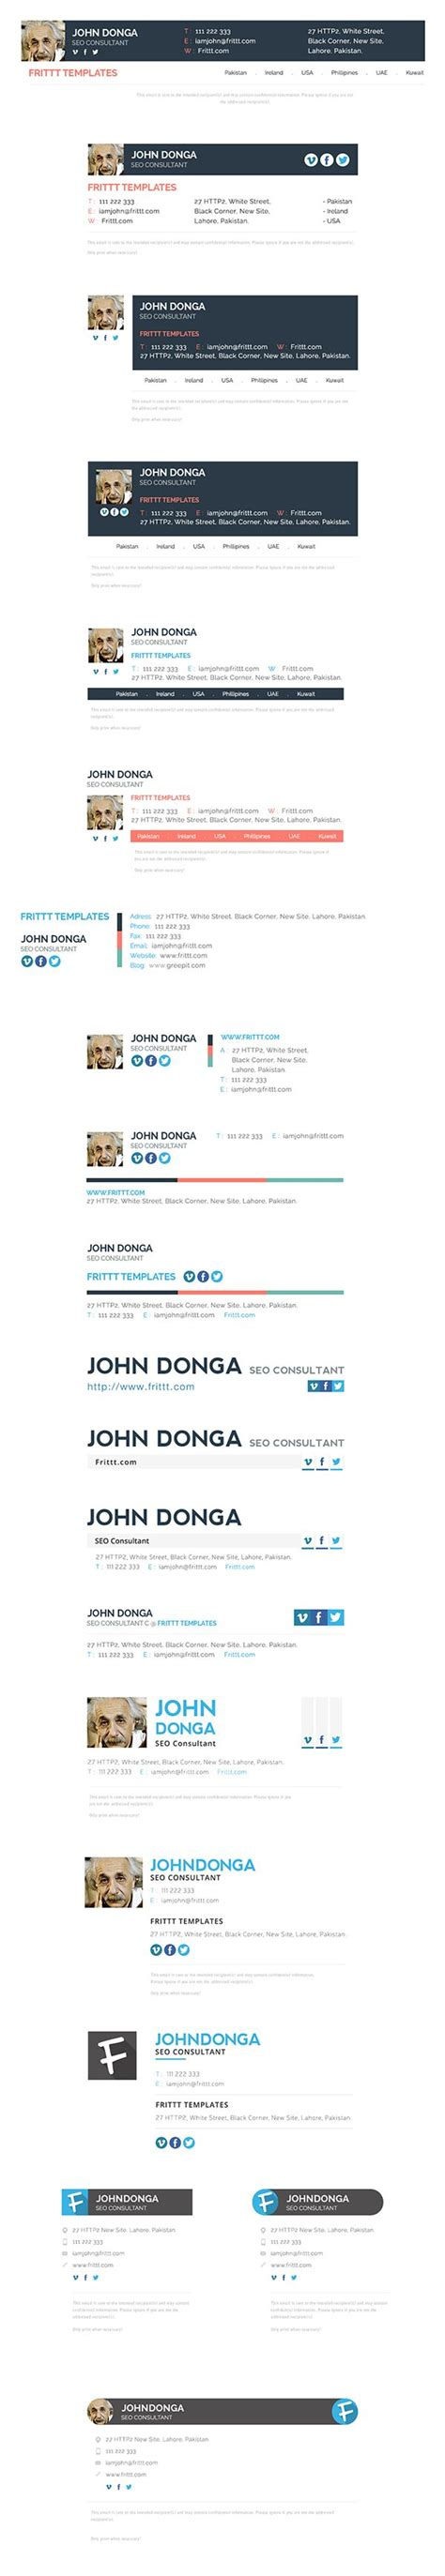 professional email signatures templates 17 best images about email signatures on